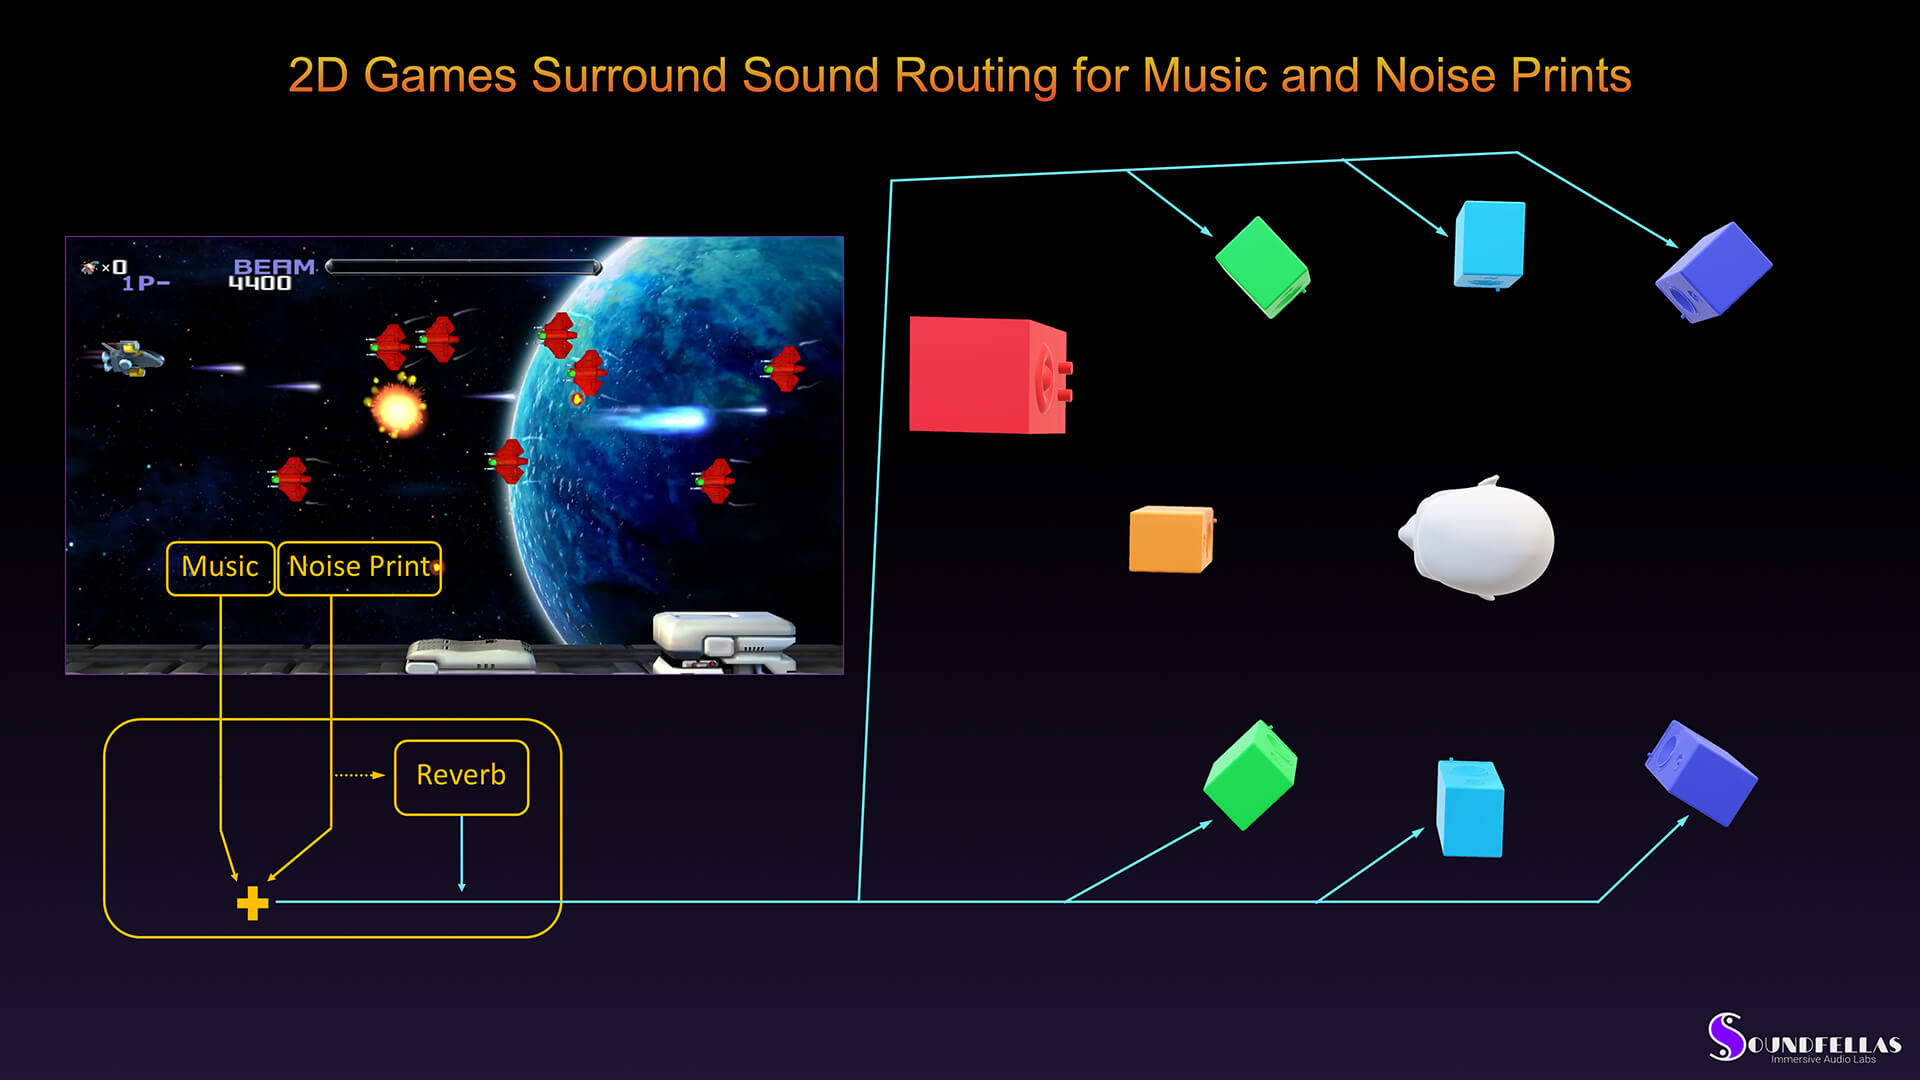 What 2D game developers fear about surround sound and why you should do it anyway page's image titled 2D game surround sound routing for music and noise prints